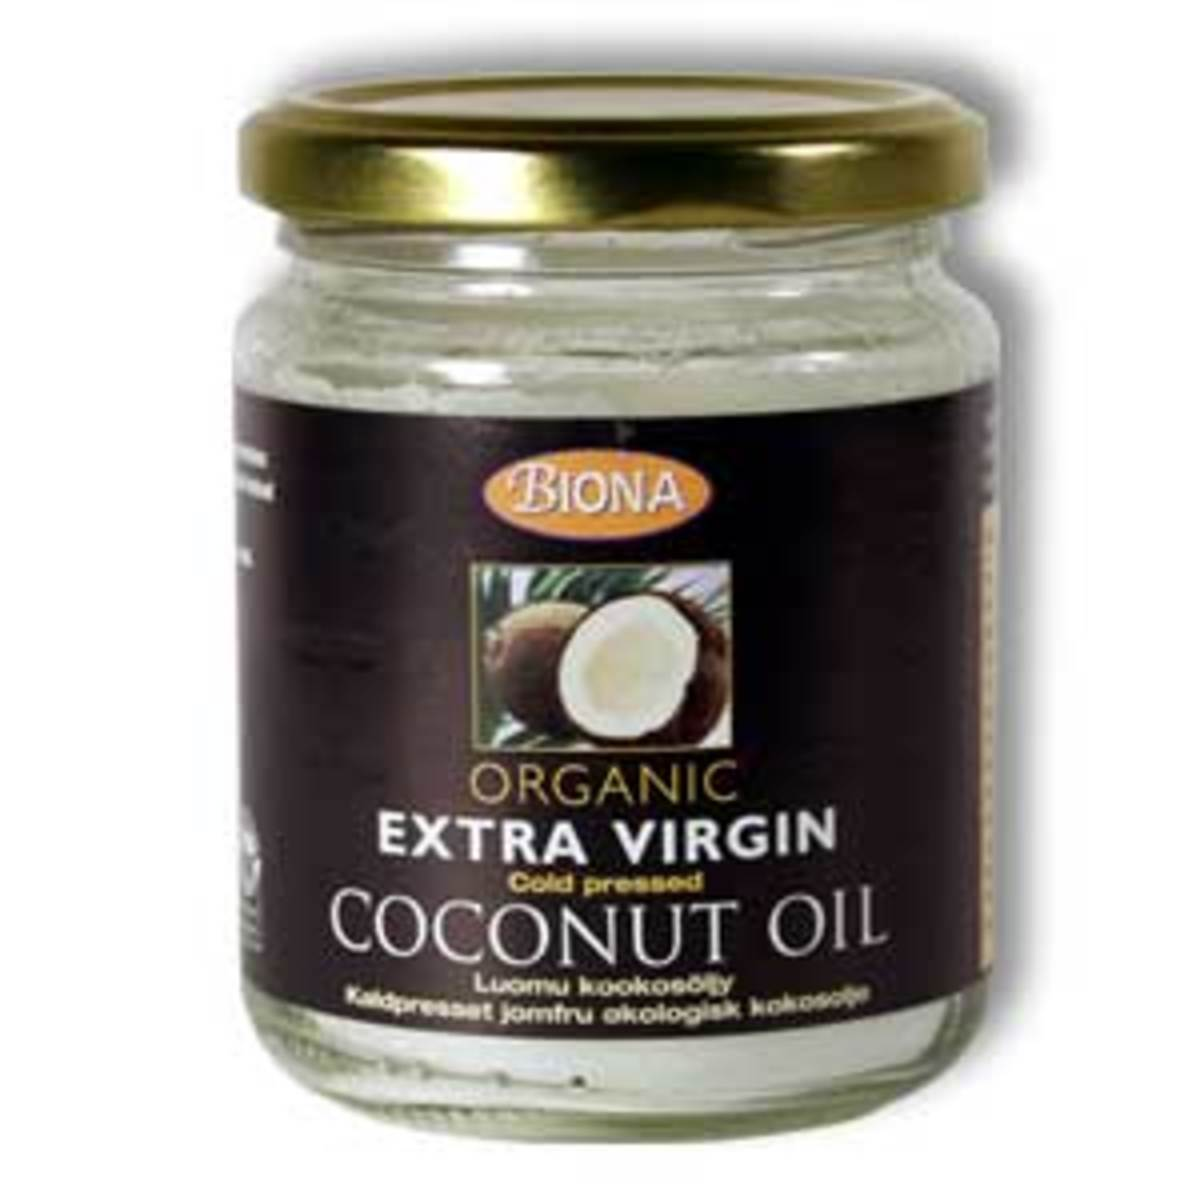 Any Virgin Coconut Oil - refined with no hydrogenated fats - is acceptable.